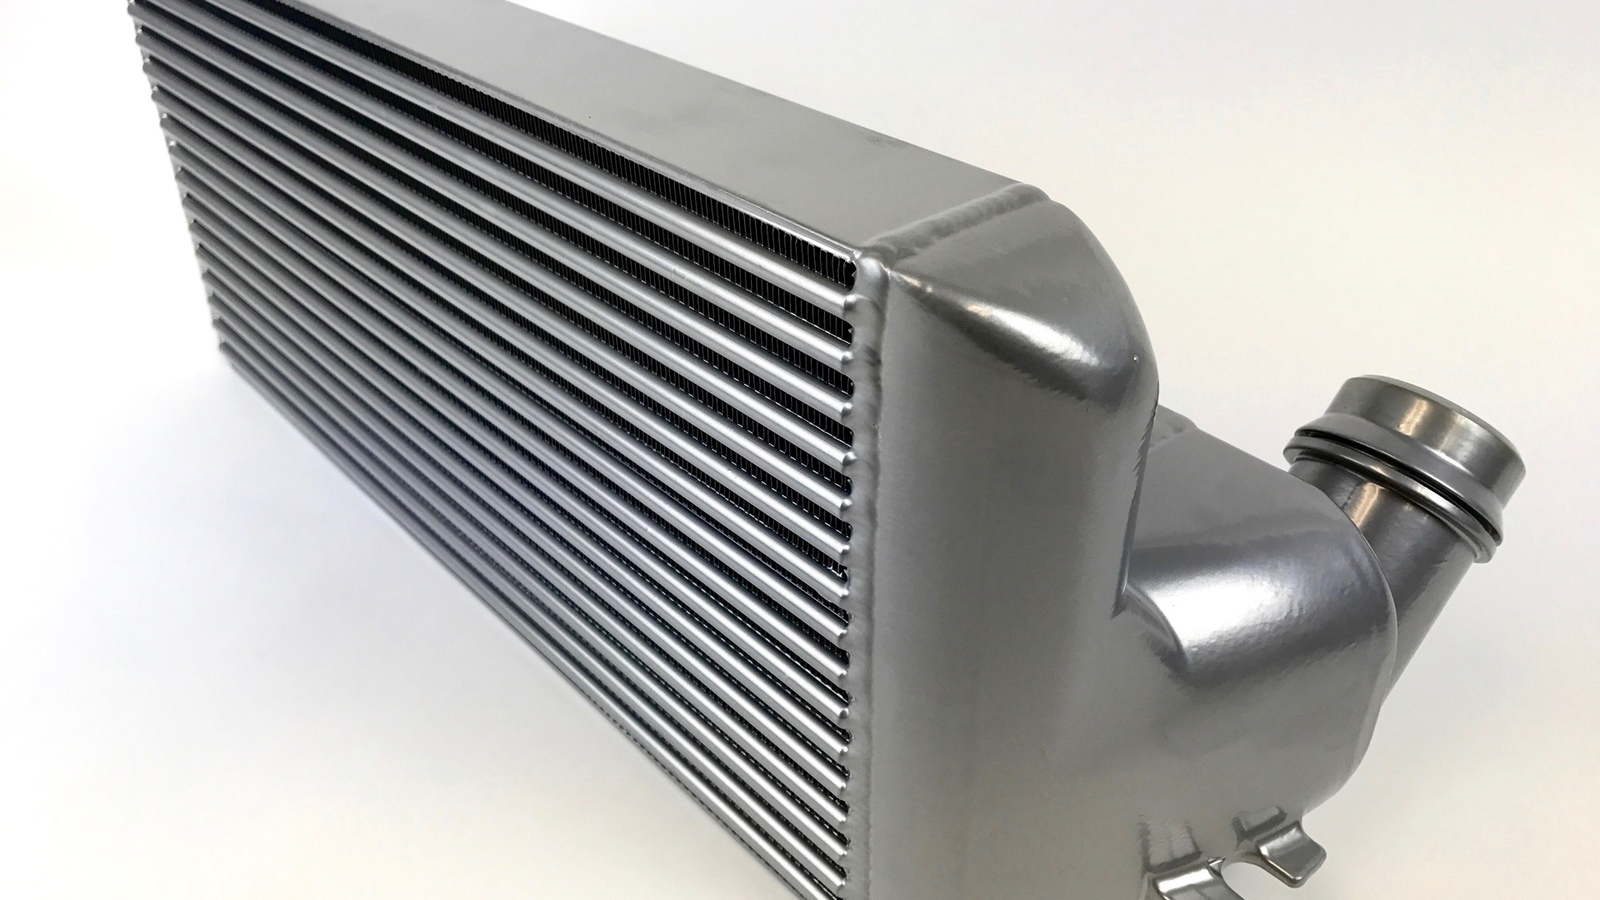 F3X - The new CSF High Performance intercooler for F series